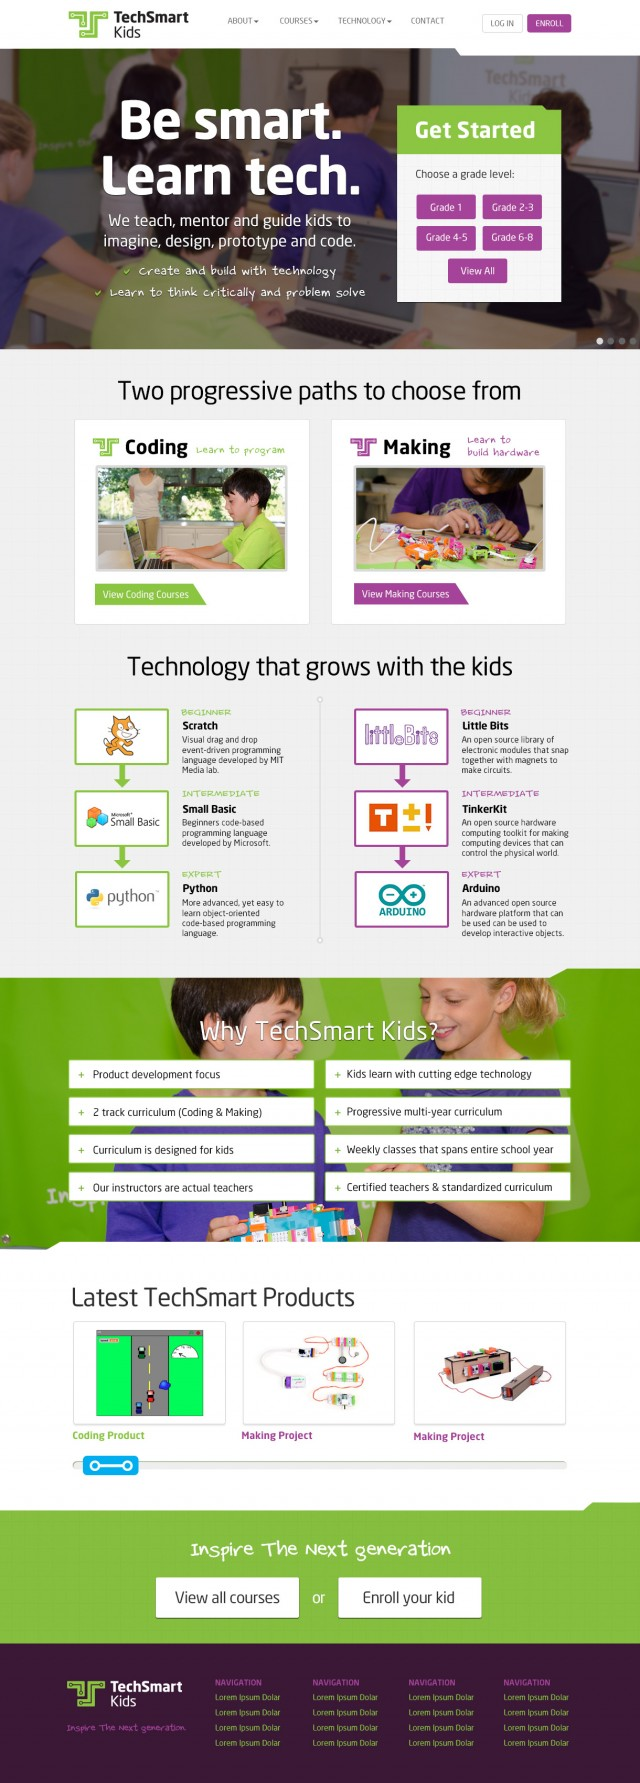 TechSmart Kids Website Home Page